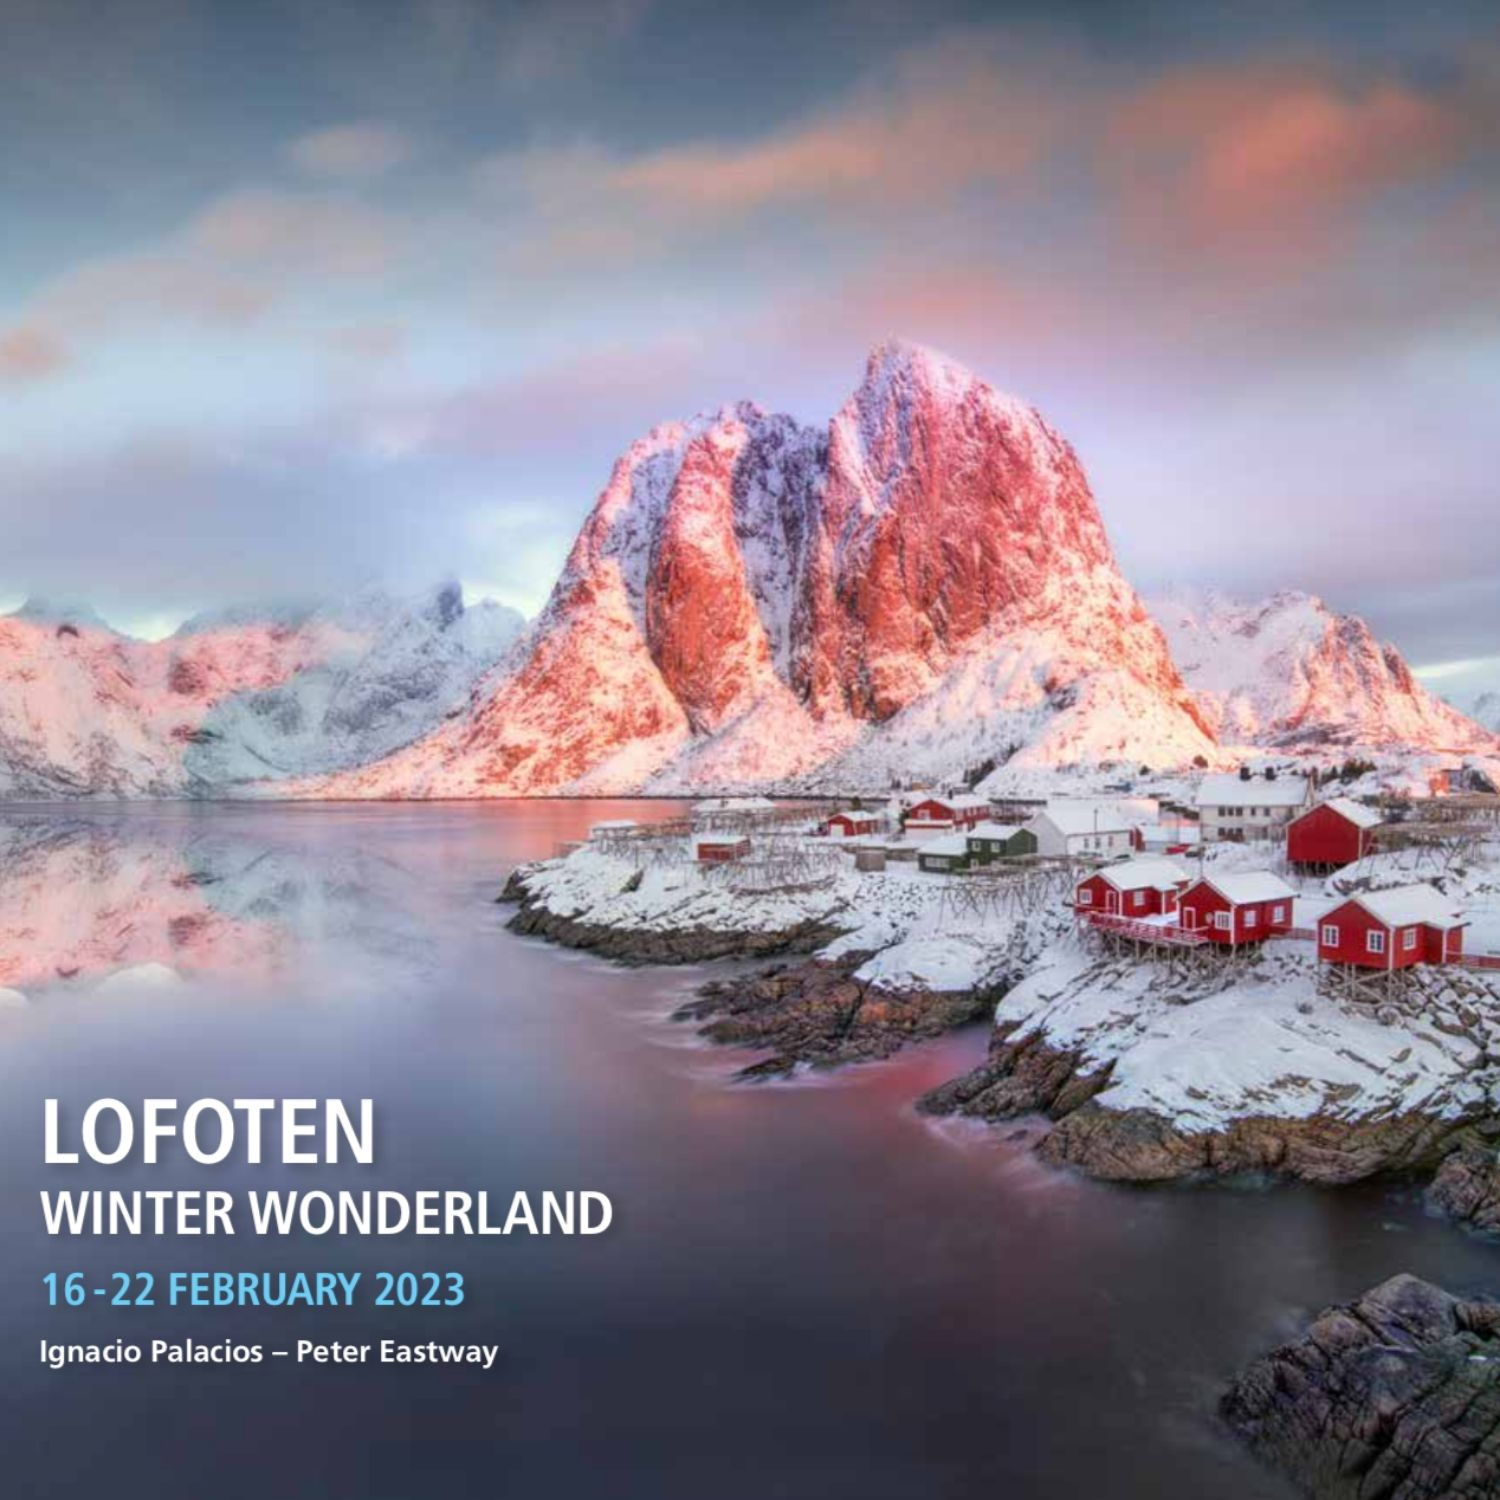 Lofoten Norway Photography Tour with Ignacio Palacios & Peter Eastway